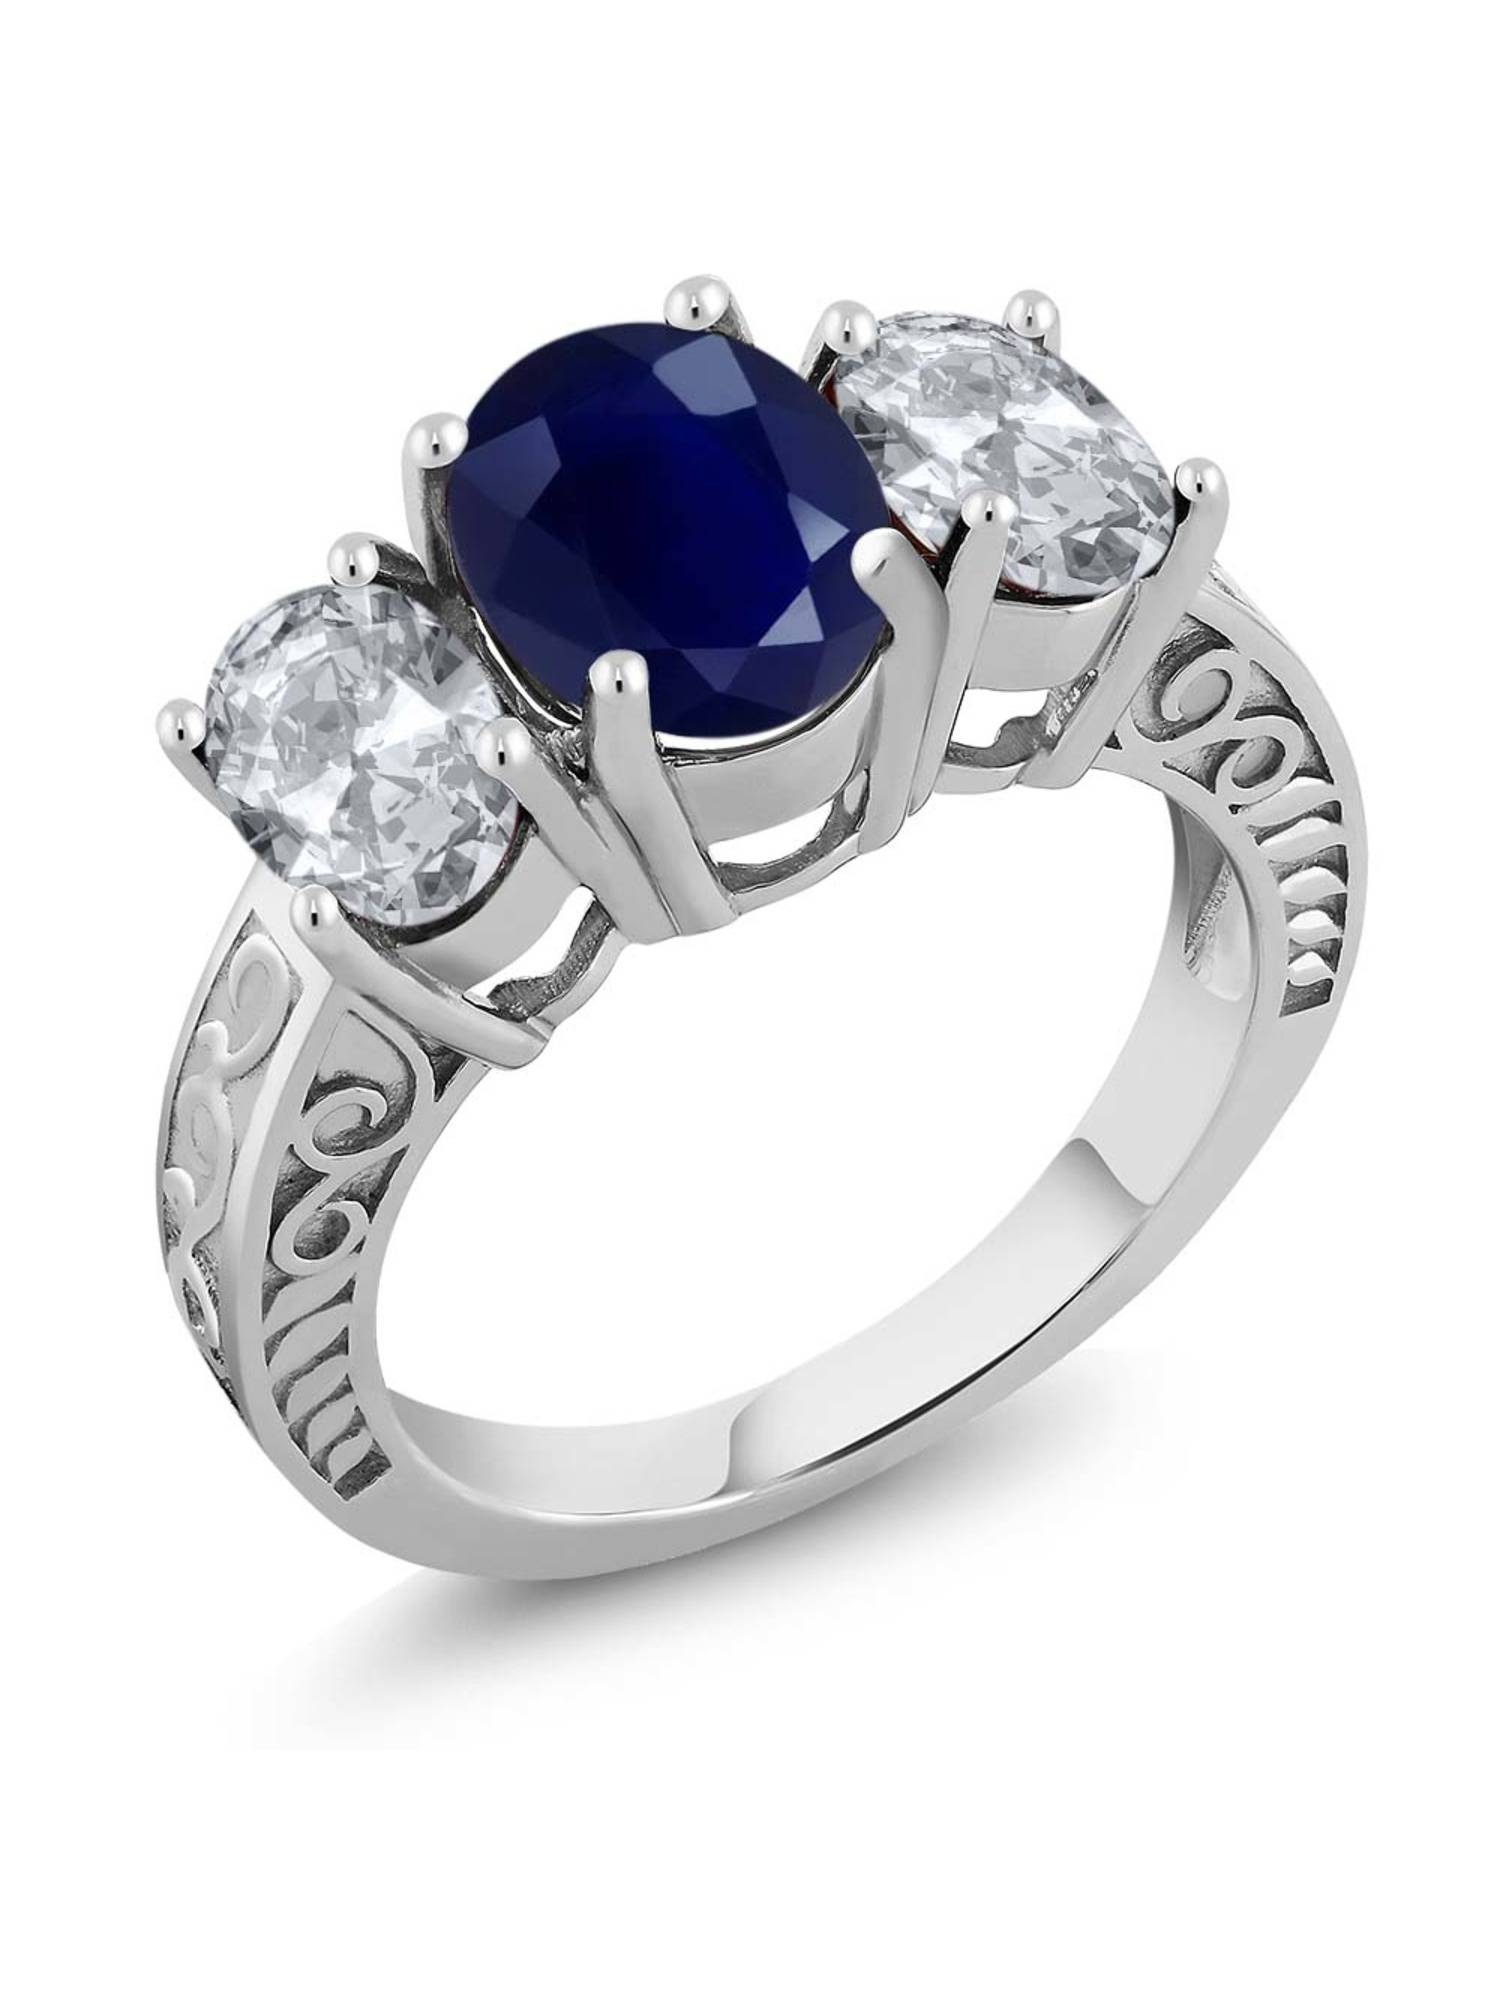 4.40 Ct Oval Blue Sapphire White Topaz 925 Sterling Silver Ring by